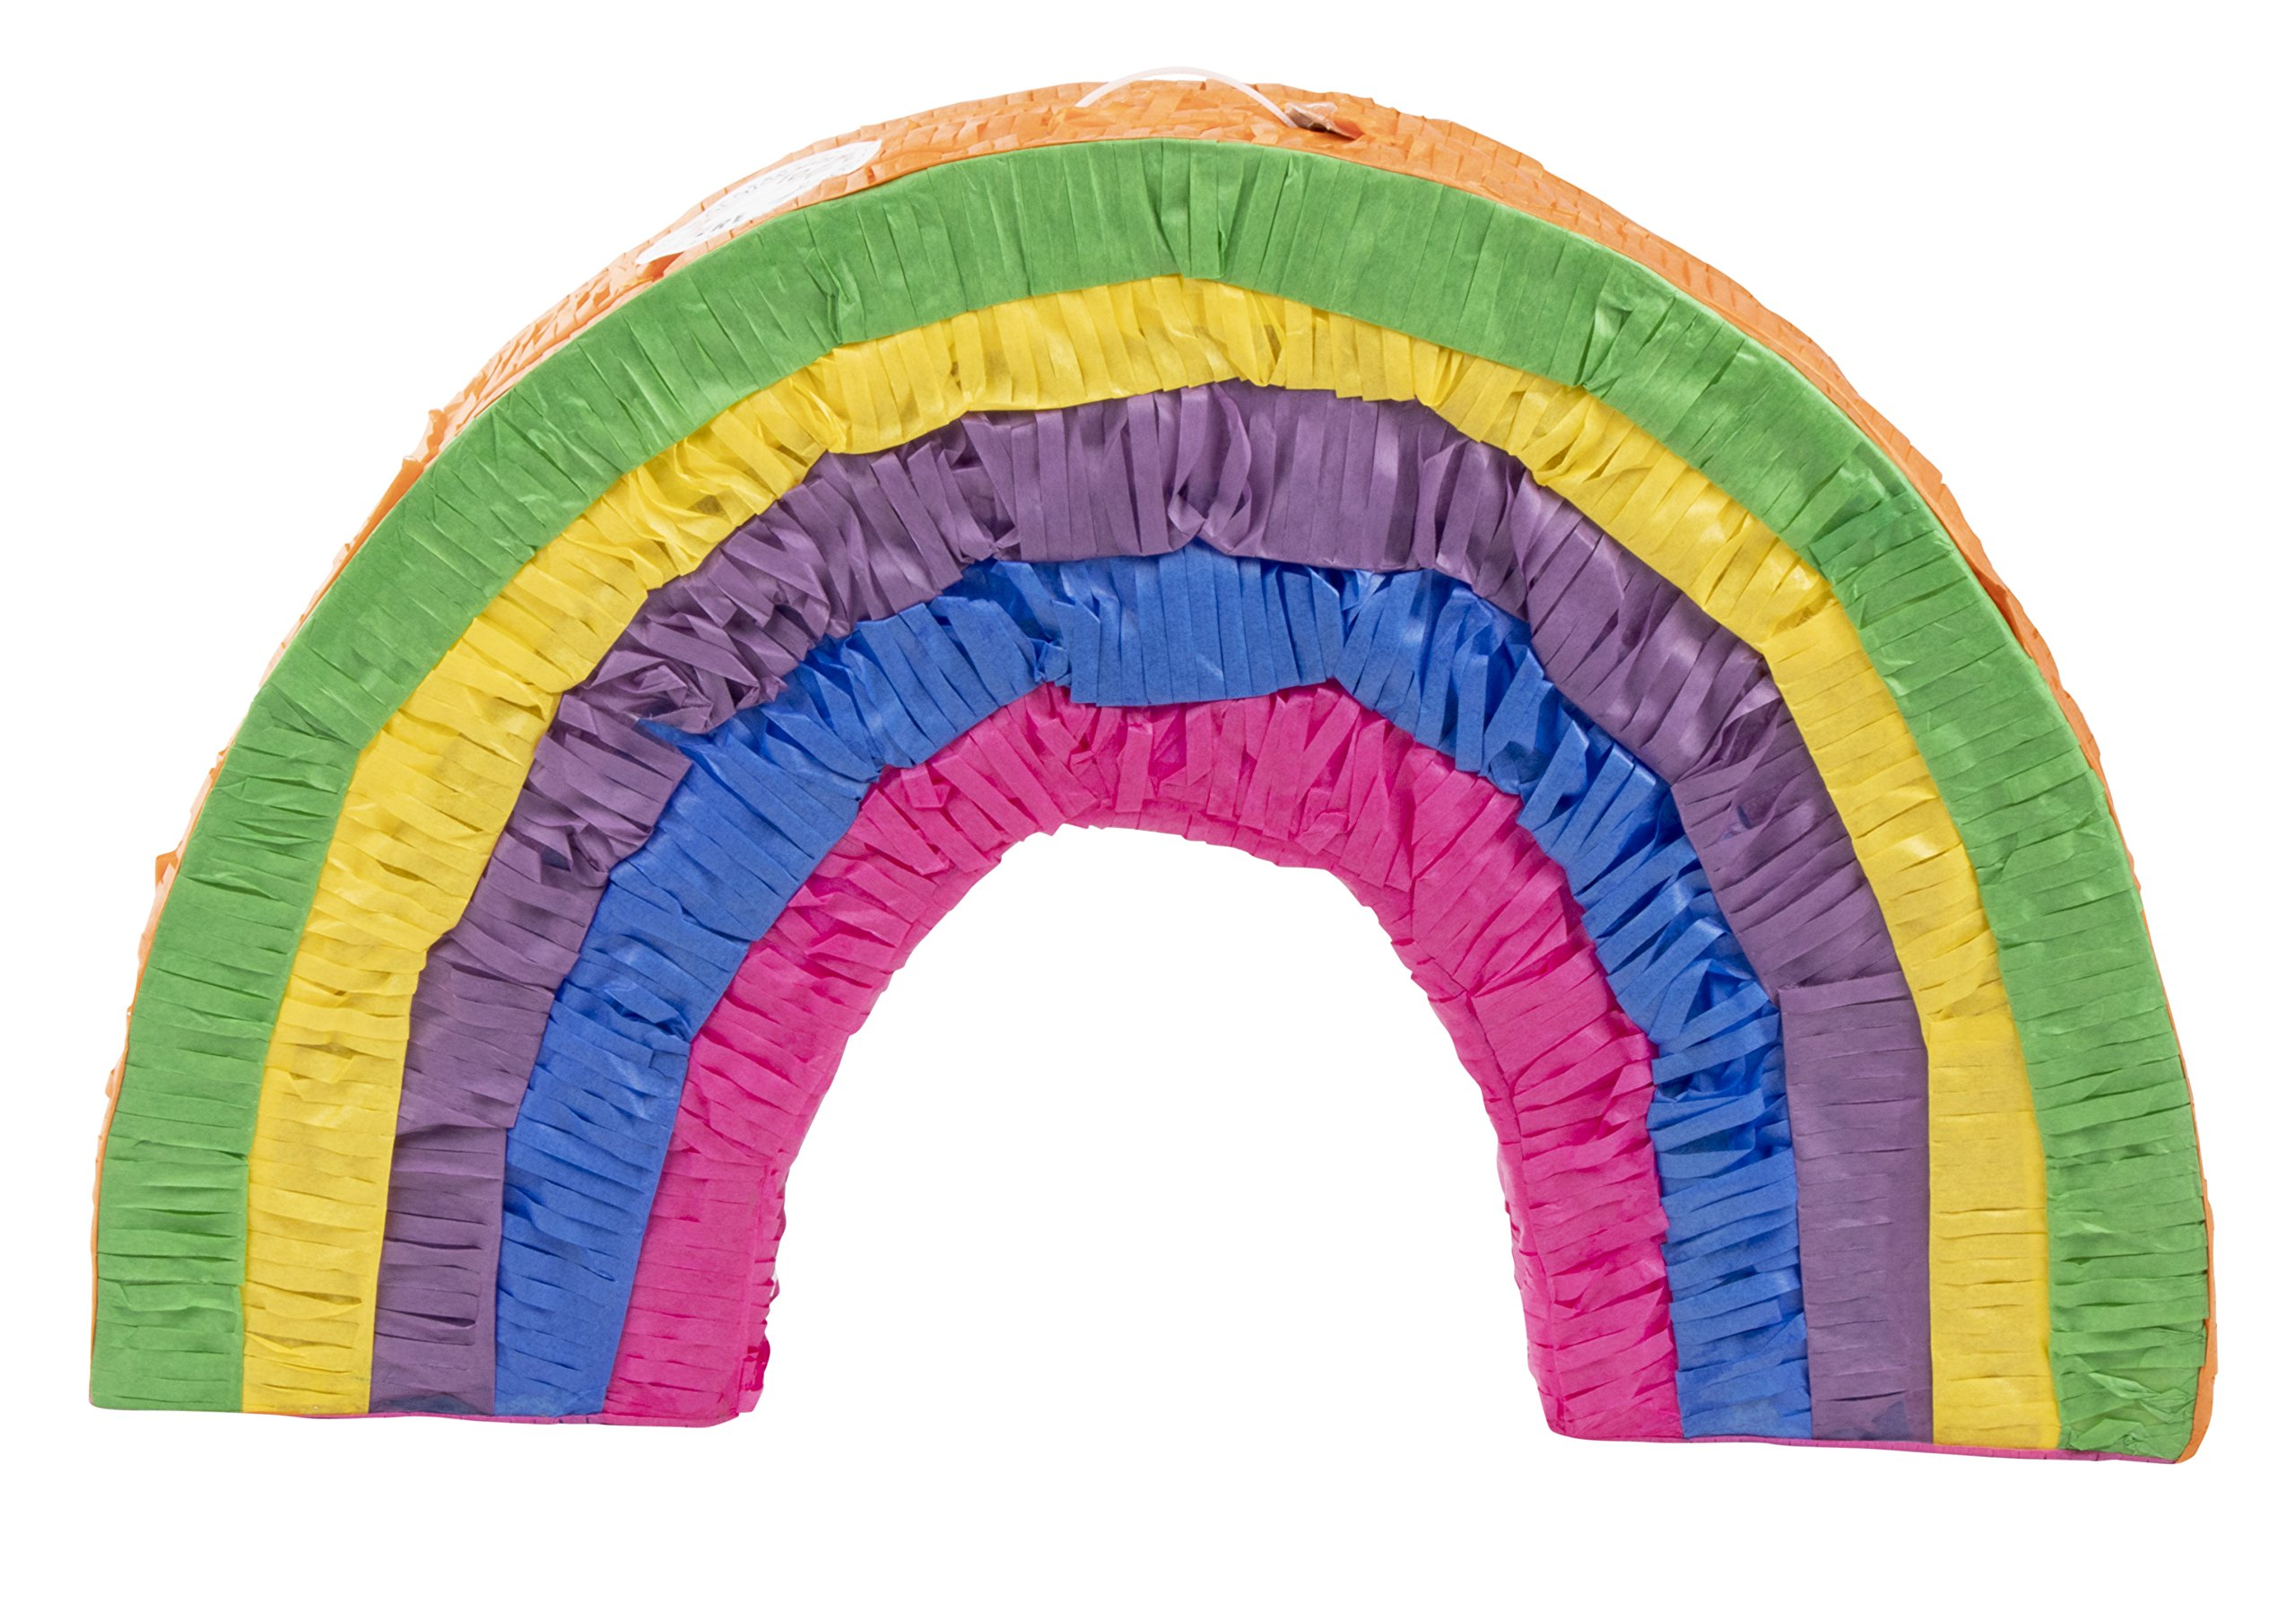 Rainbow Pinata - Kids Birthday Party Supplies for Rainbow Themed Party, Multicolored, 16.5 x 10.2 x 3 Inches